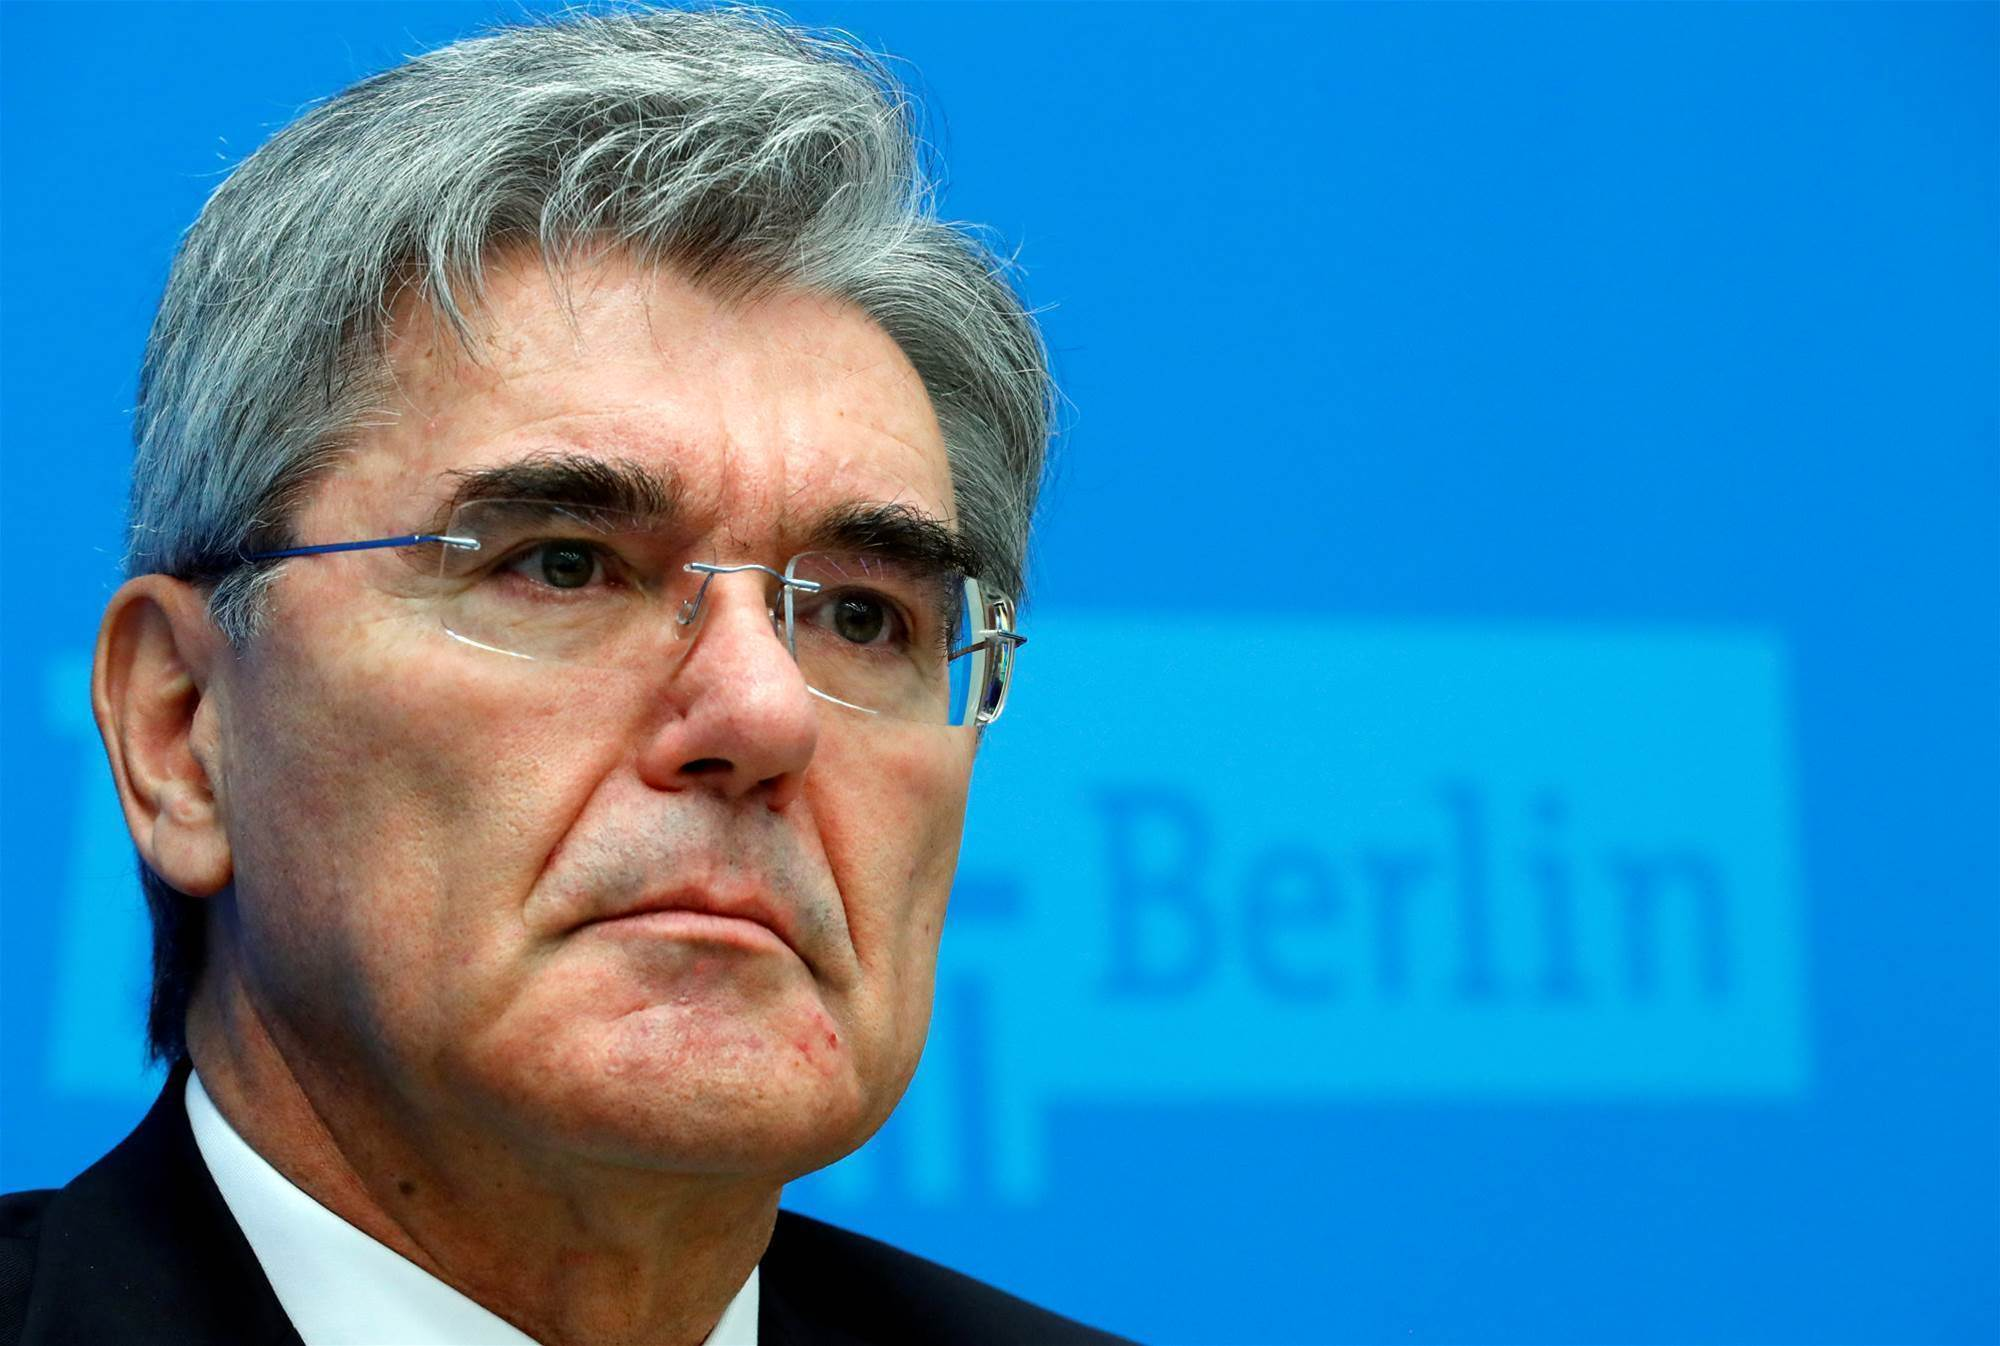 Siemens revisits roots, sinks €600m into Berlin